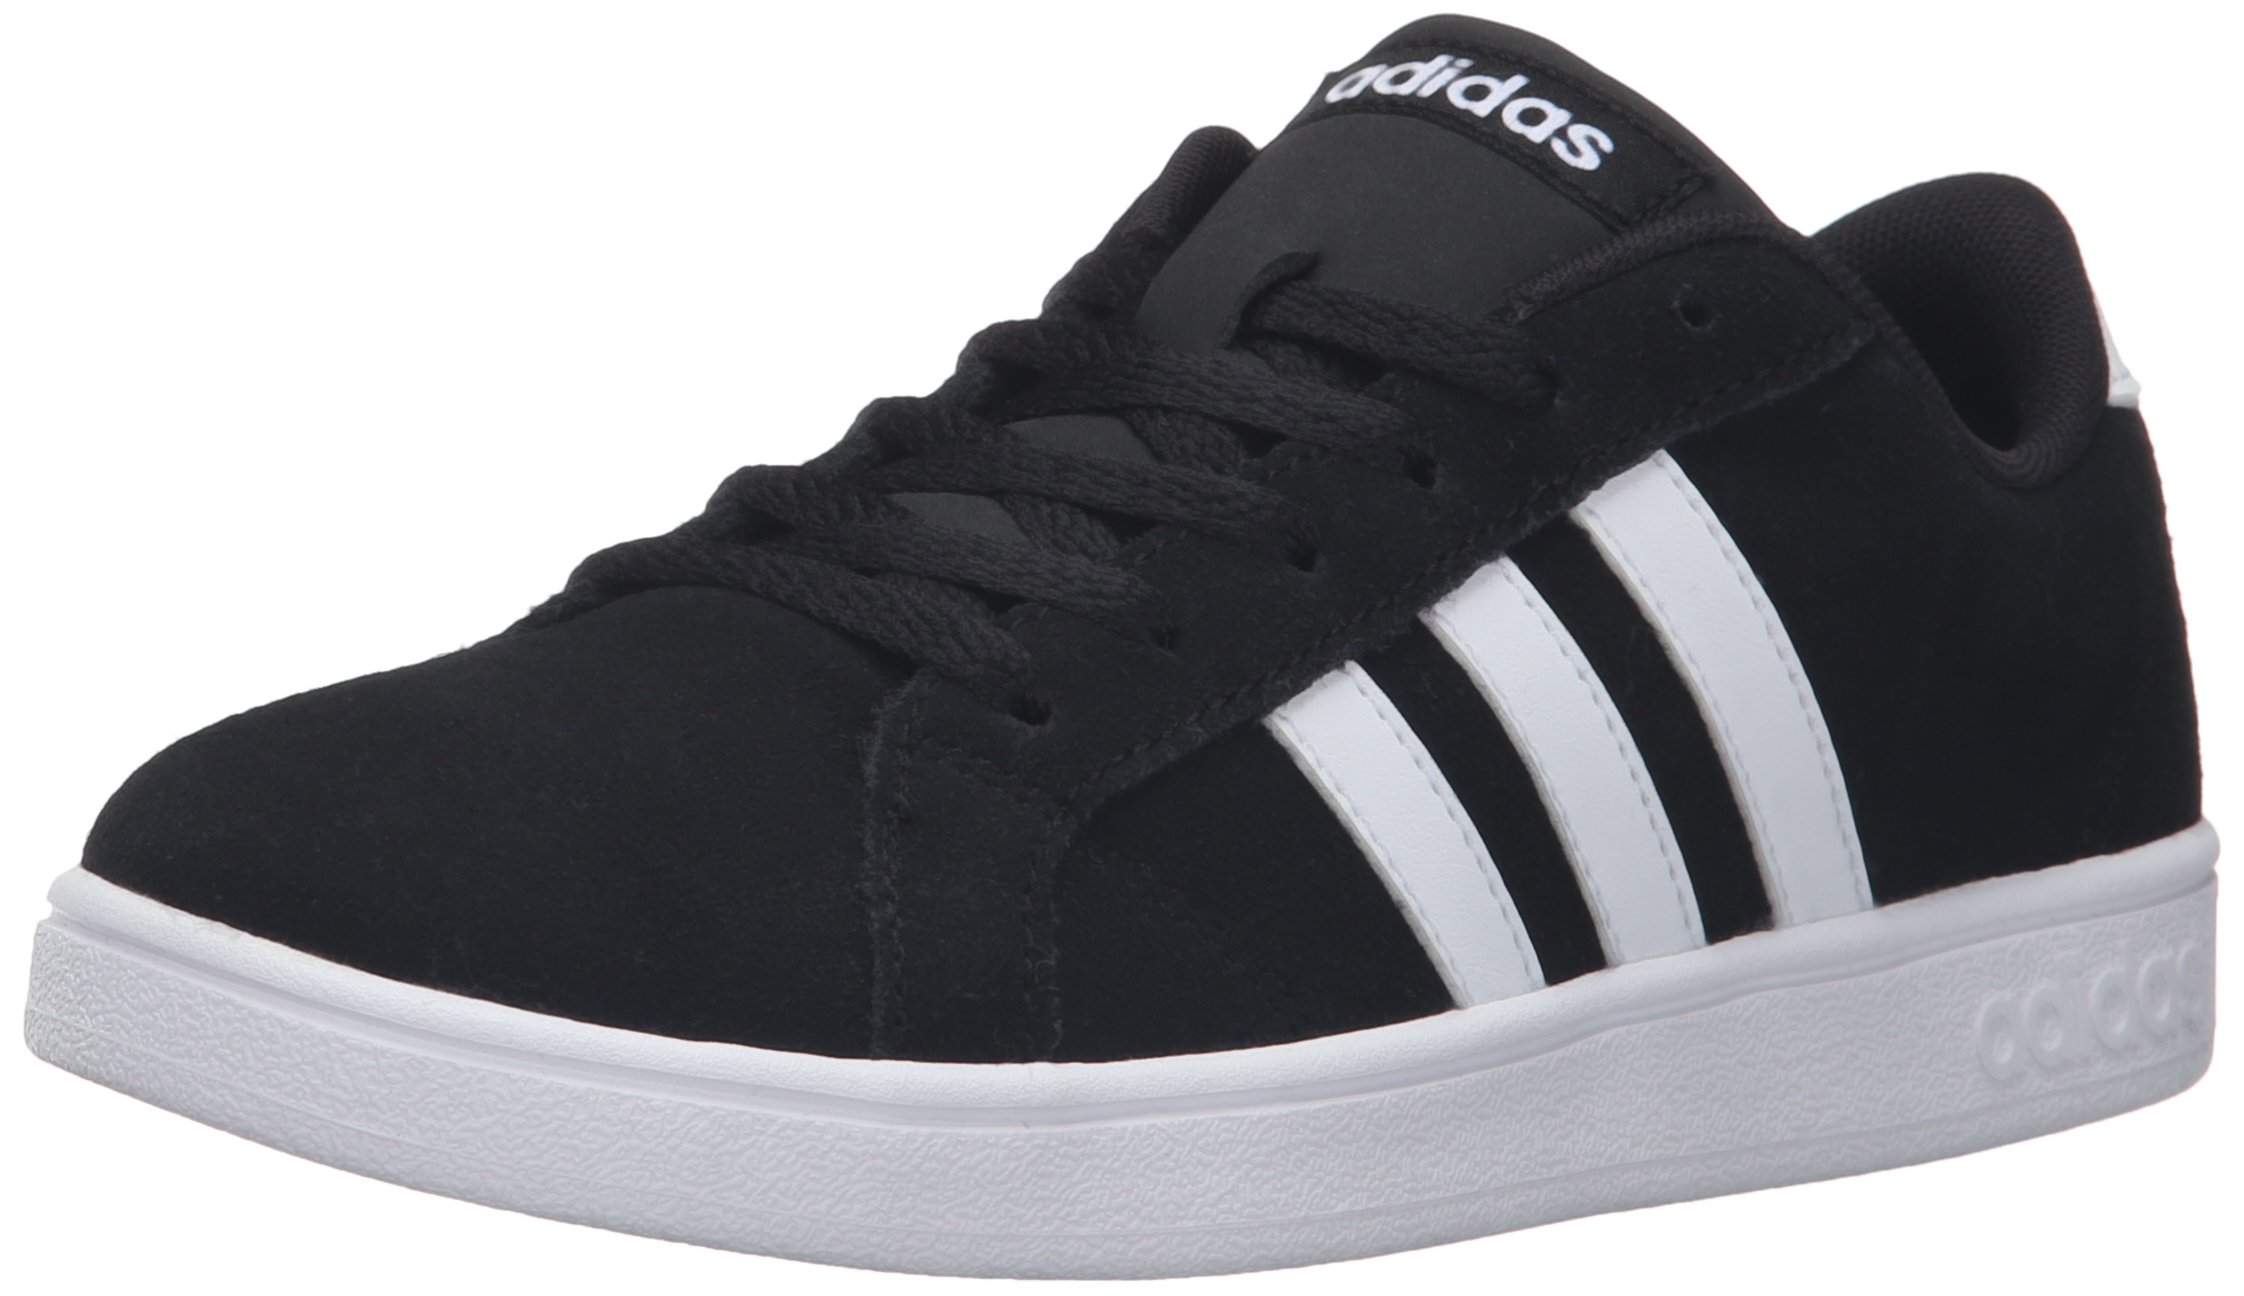 adidas NEO Boys' Baseline Sneaker, Black/White/Black, 7 M US Big Kid